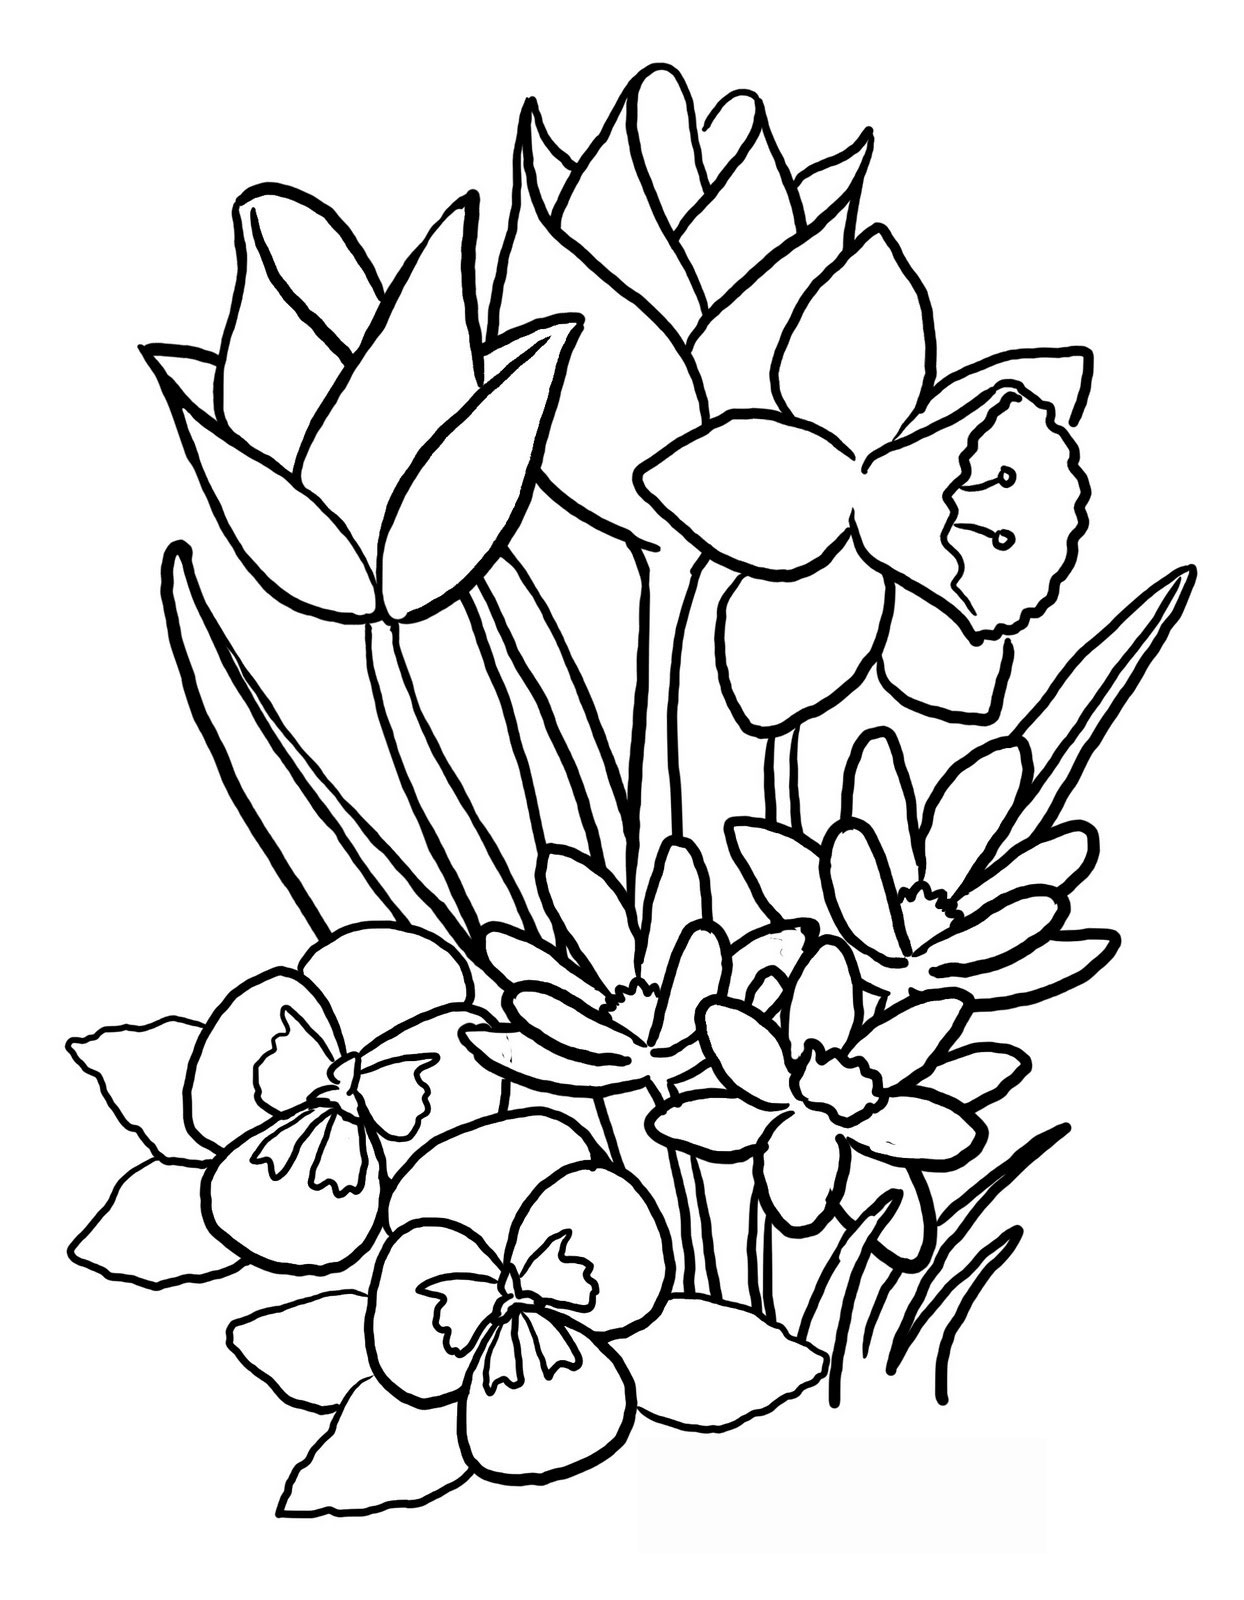 Spring flowers black and white clipart transparent Free Drawings Of Spring Flowers, Download Free Clip Art ... transparent